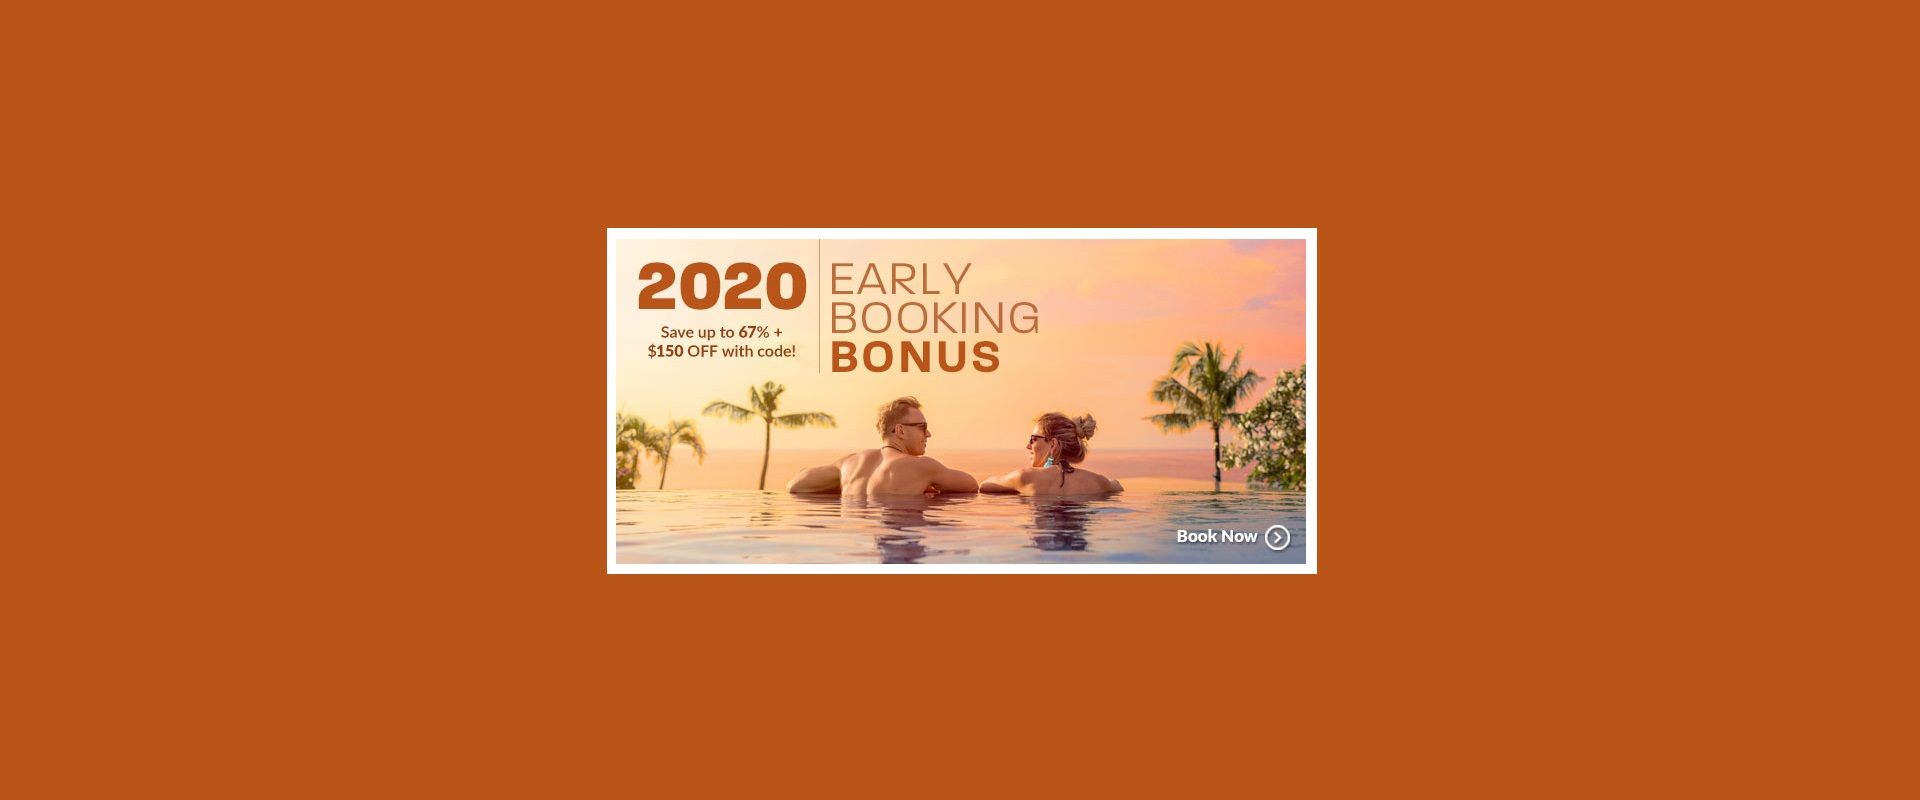 Early-Booking-Bonus-Banner-Image